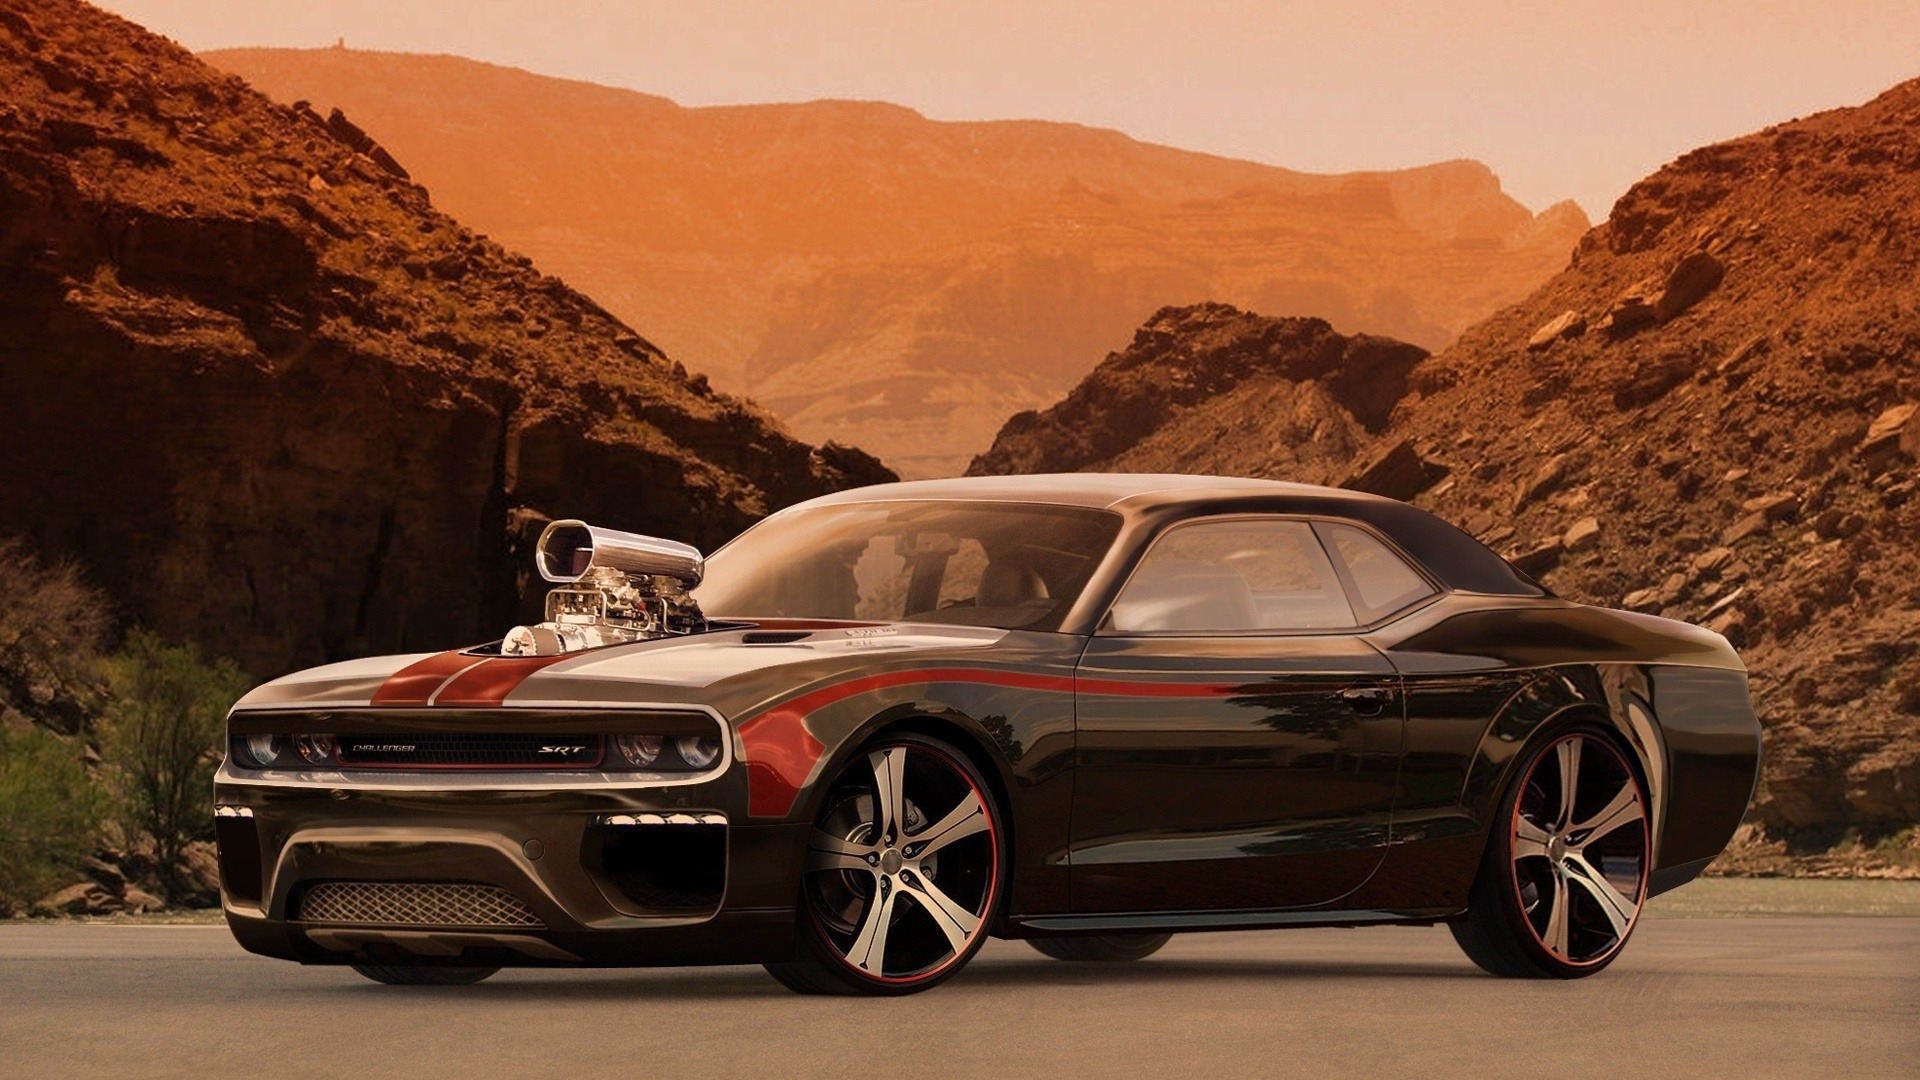 Awesome Dodge Challenger Wallpaper High Resolution Car Hd 344538 Hd Wallpaper Backgrounds Download